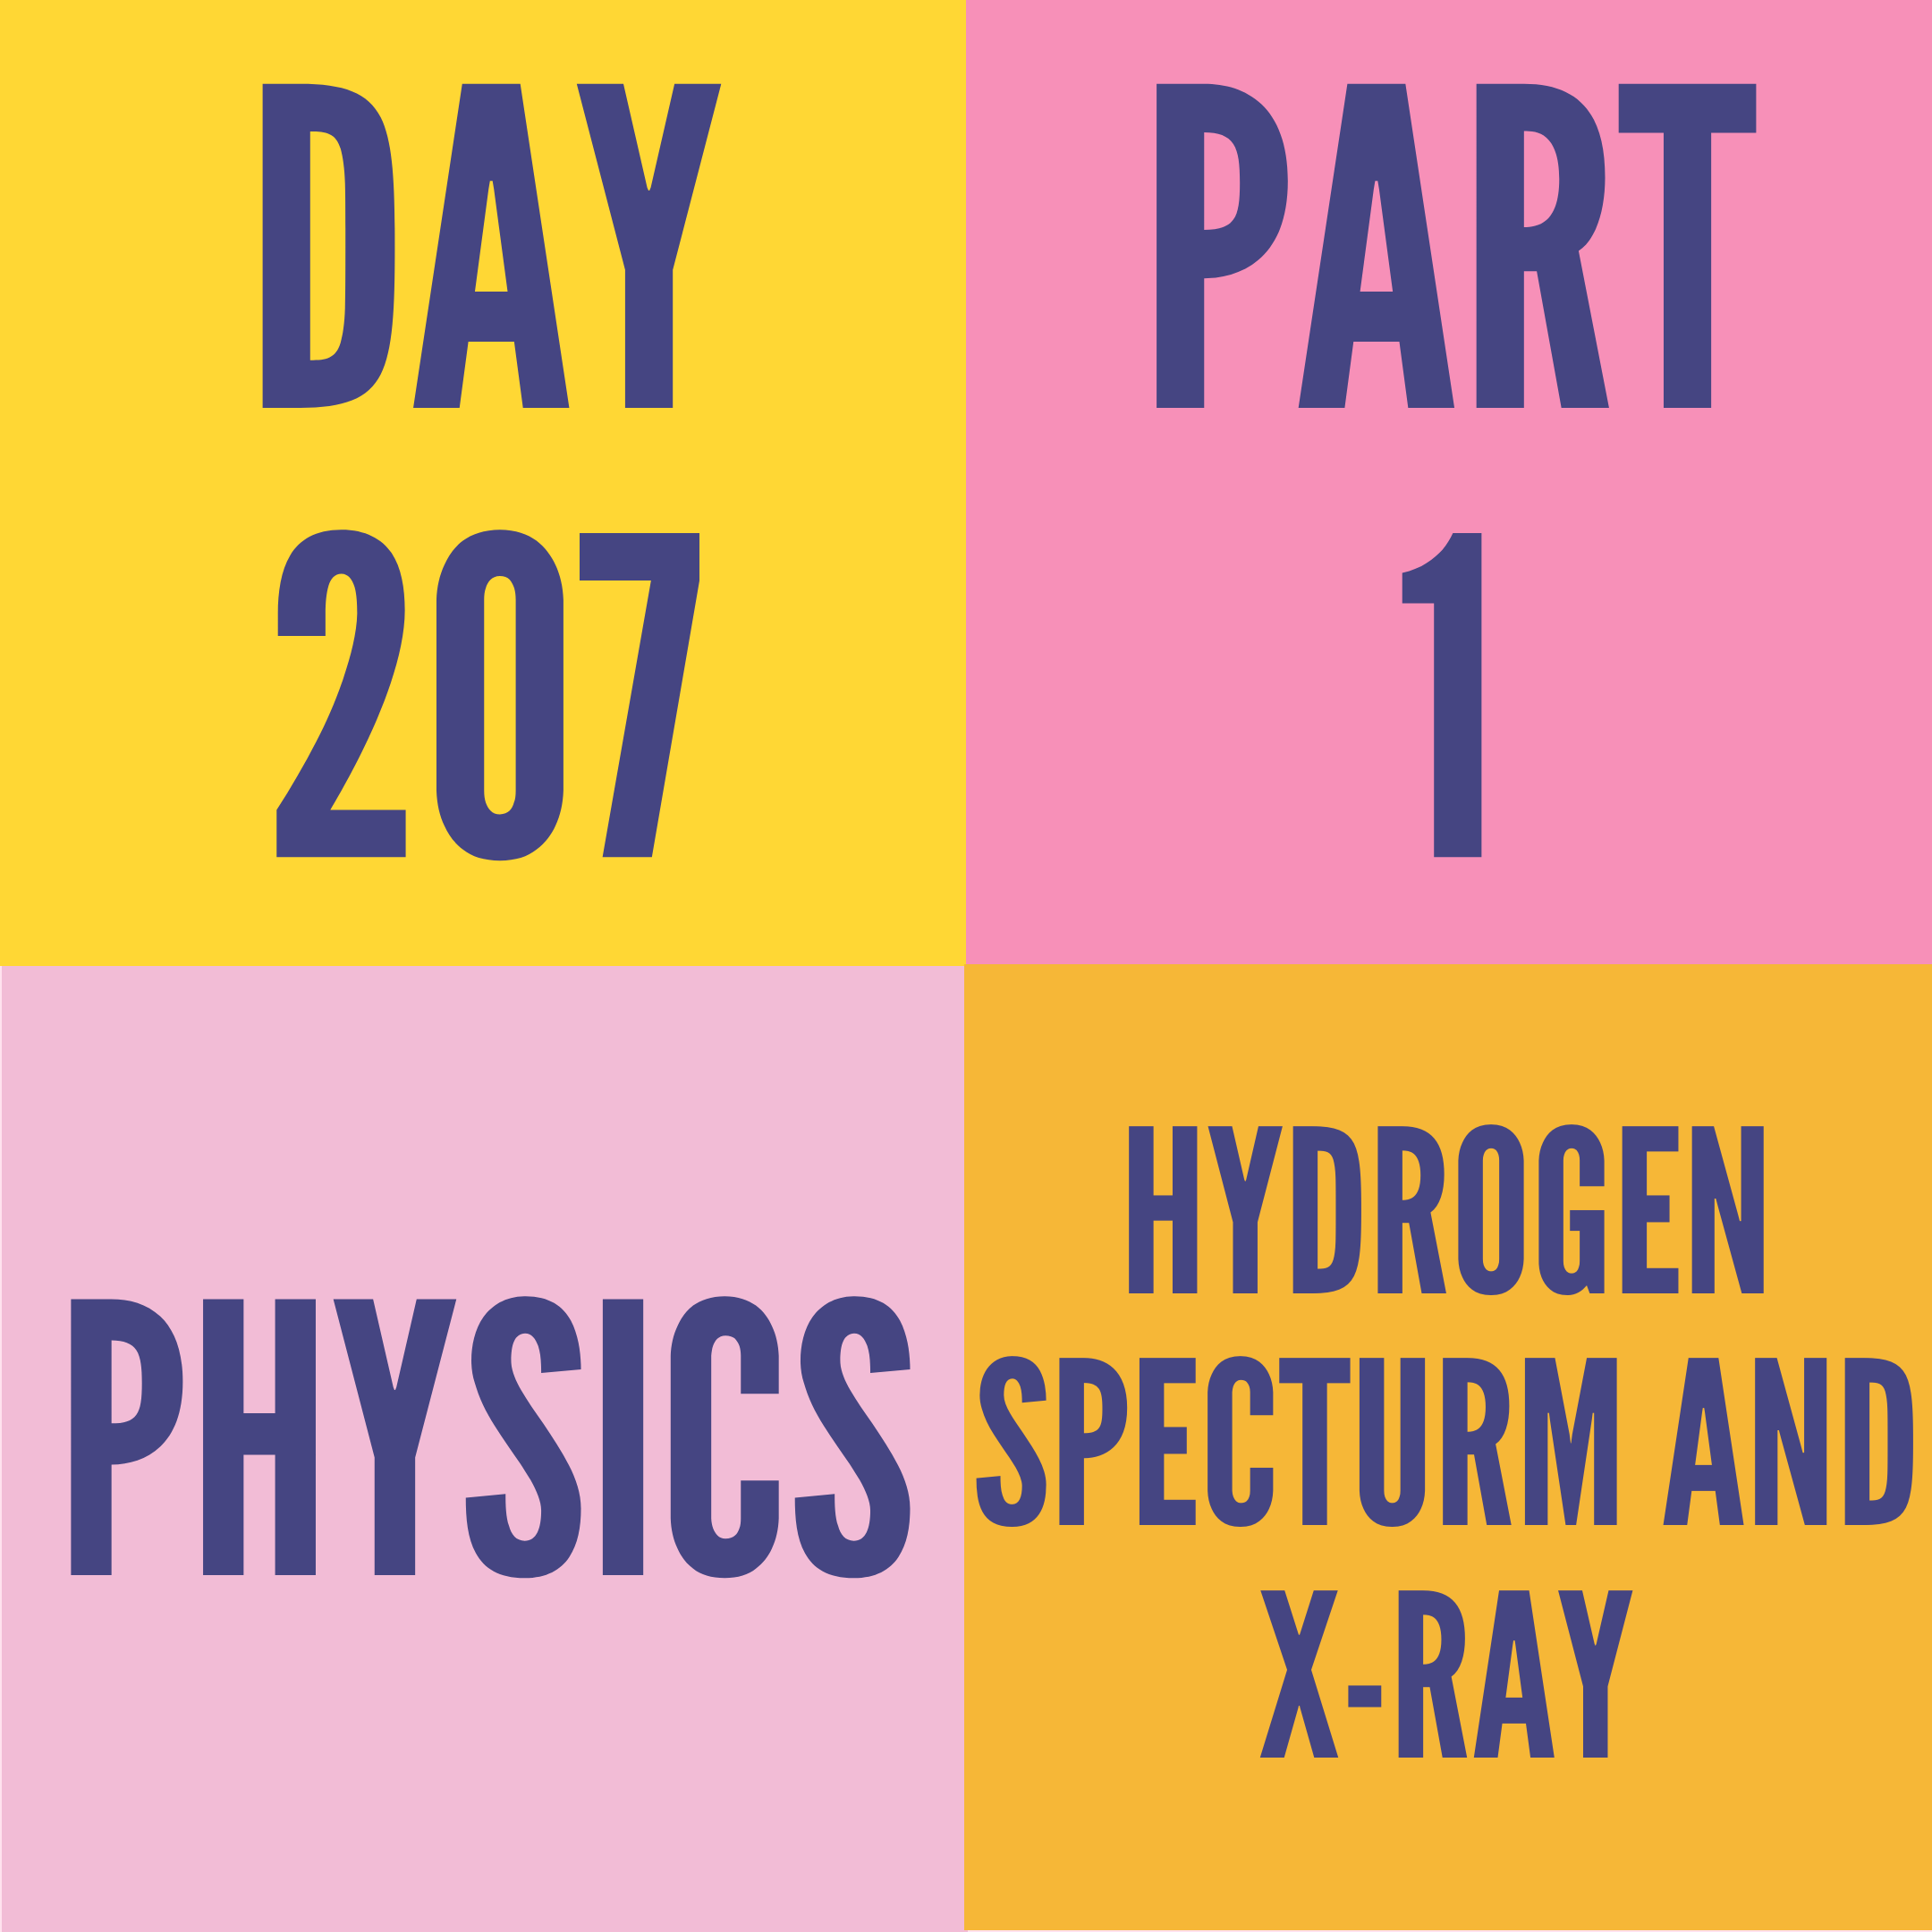 DAY-207 PART-1 HYDROGEN SPECTURM AND X-RAY